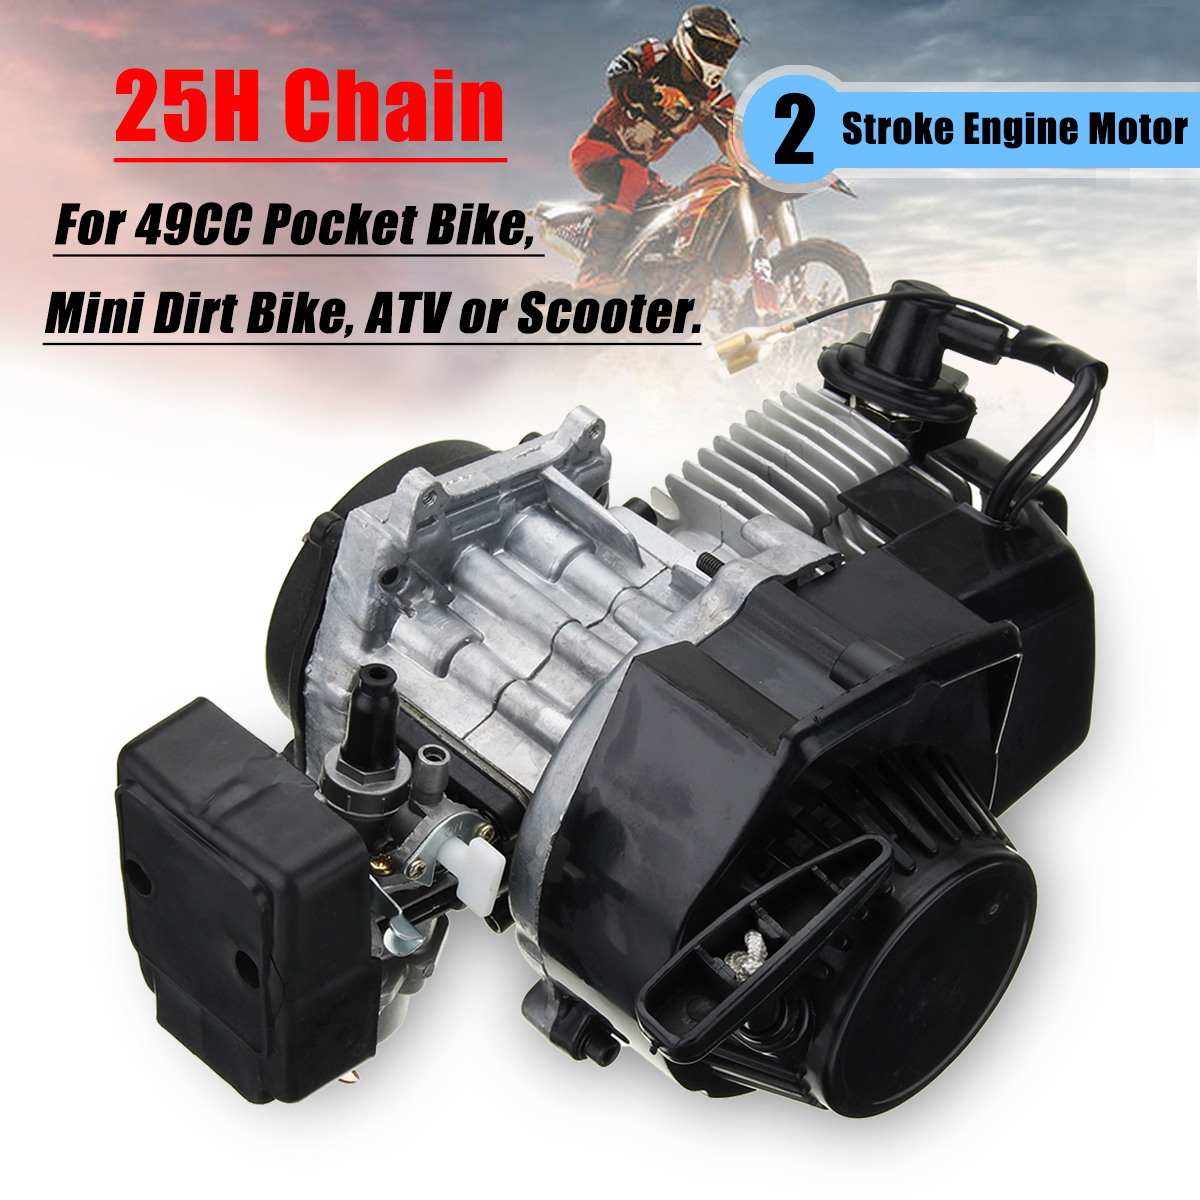 47cc 49cc 2 Stroke Pull Start Engine Motor For Mini Pocket Dirt Bike Ignition Wiring Diagram Shipping Methods